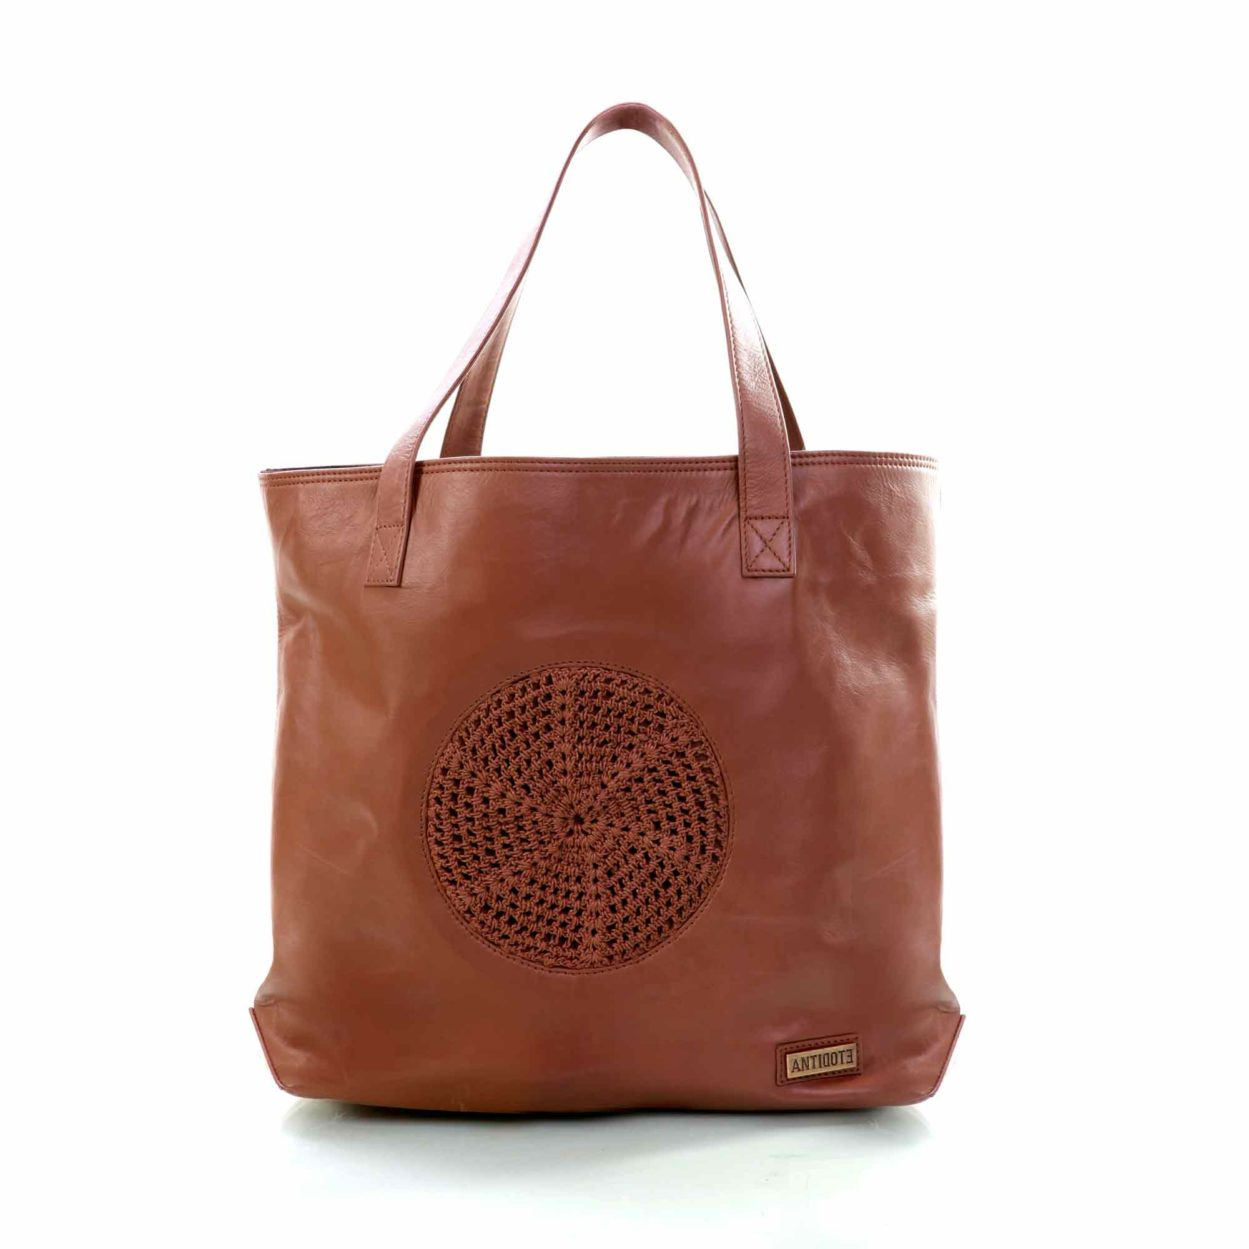 Brown Candid tote